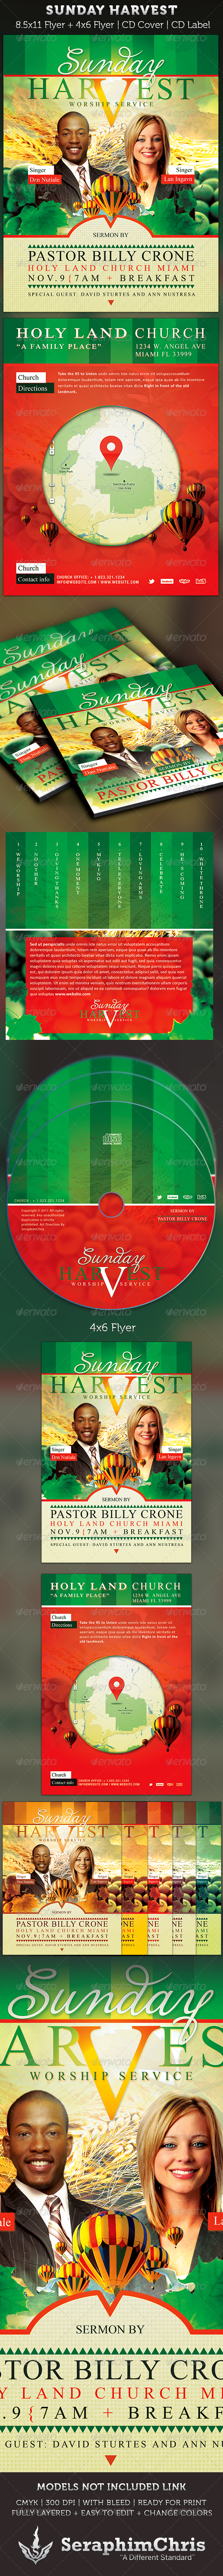 Sunday Harvest: Church Flyer and CD Art Template - Church Flyers